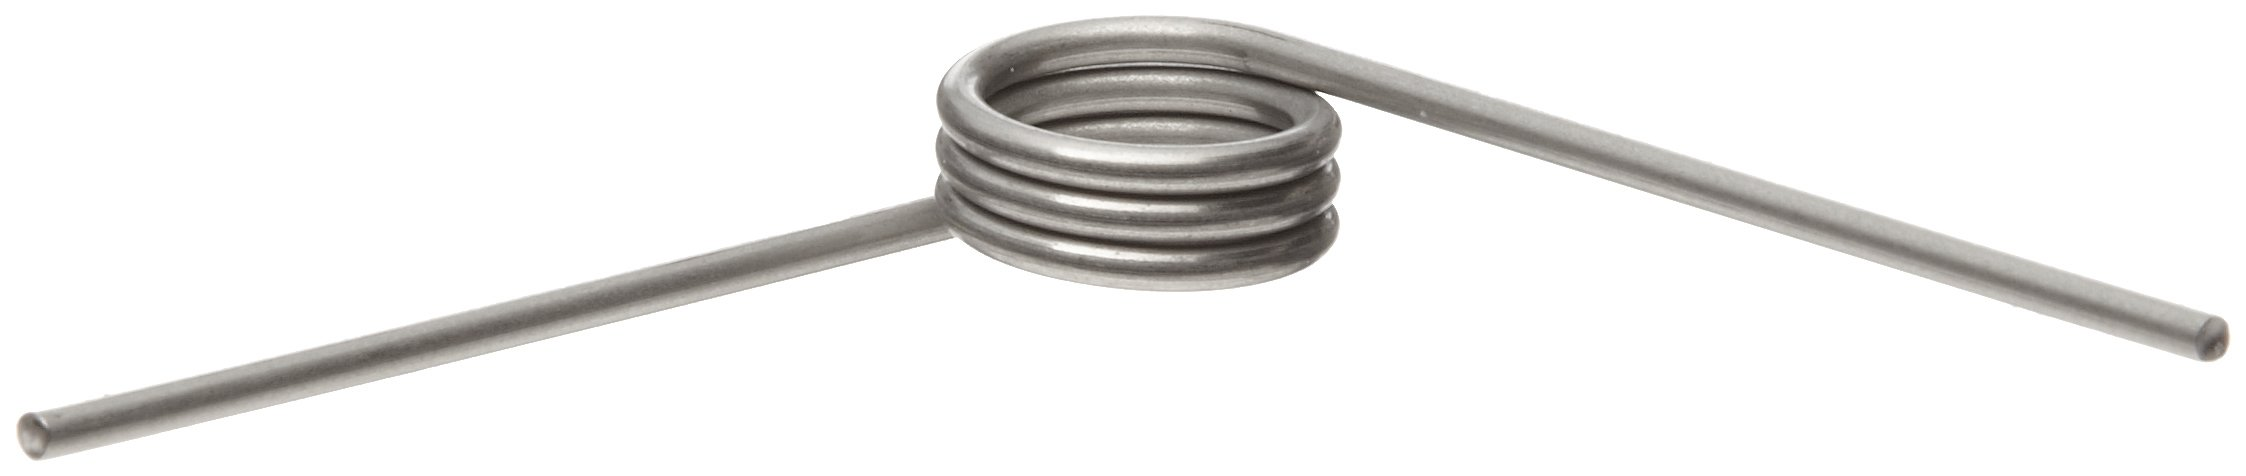 302 Stainless Steel Torsion Spring, Left Hand Wind Direction, 90° Deflection, 0.484'' OD, 0.054'' Wire Size, 2'' Leg Length, 0.296'' Mandrel Size, 0.31'' Min. Axial Space (Pack of 10)